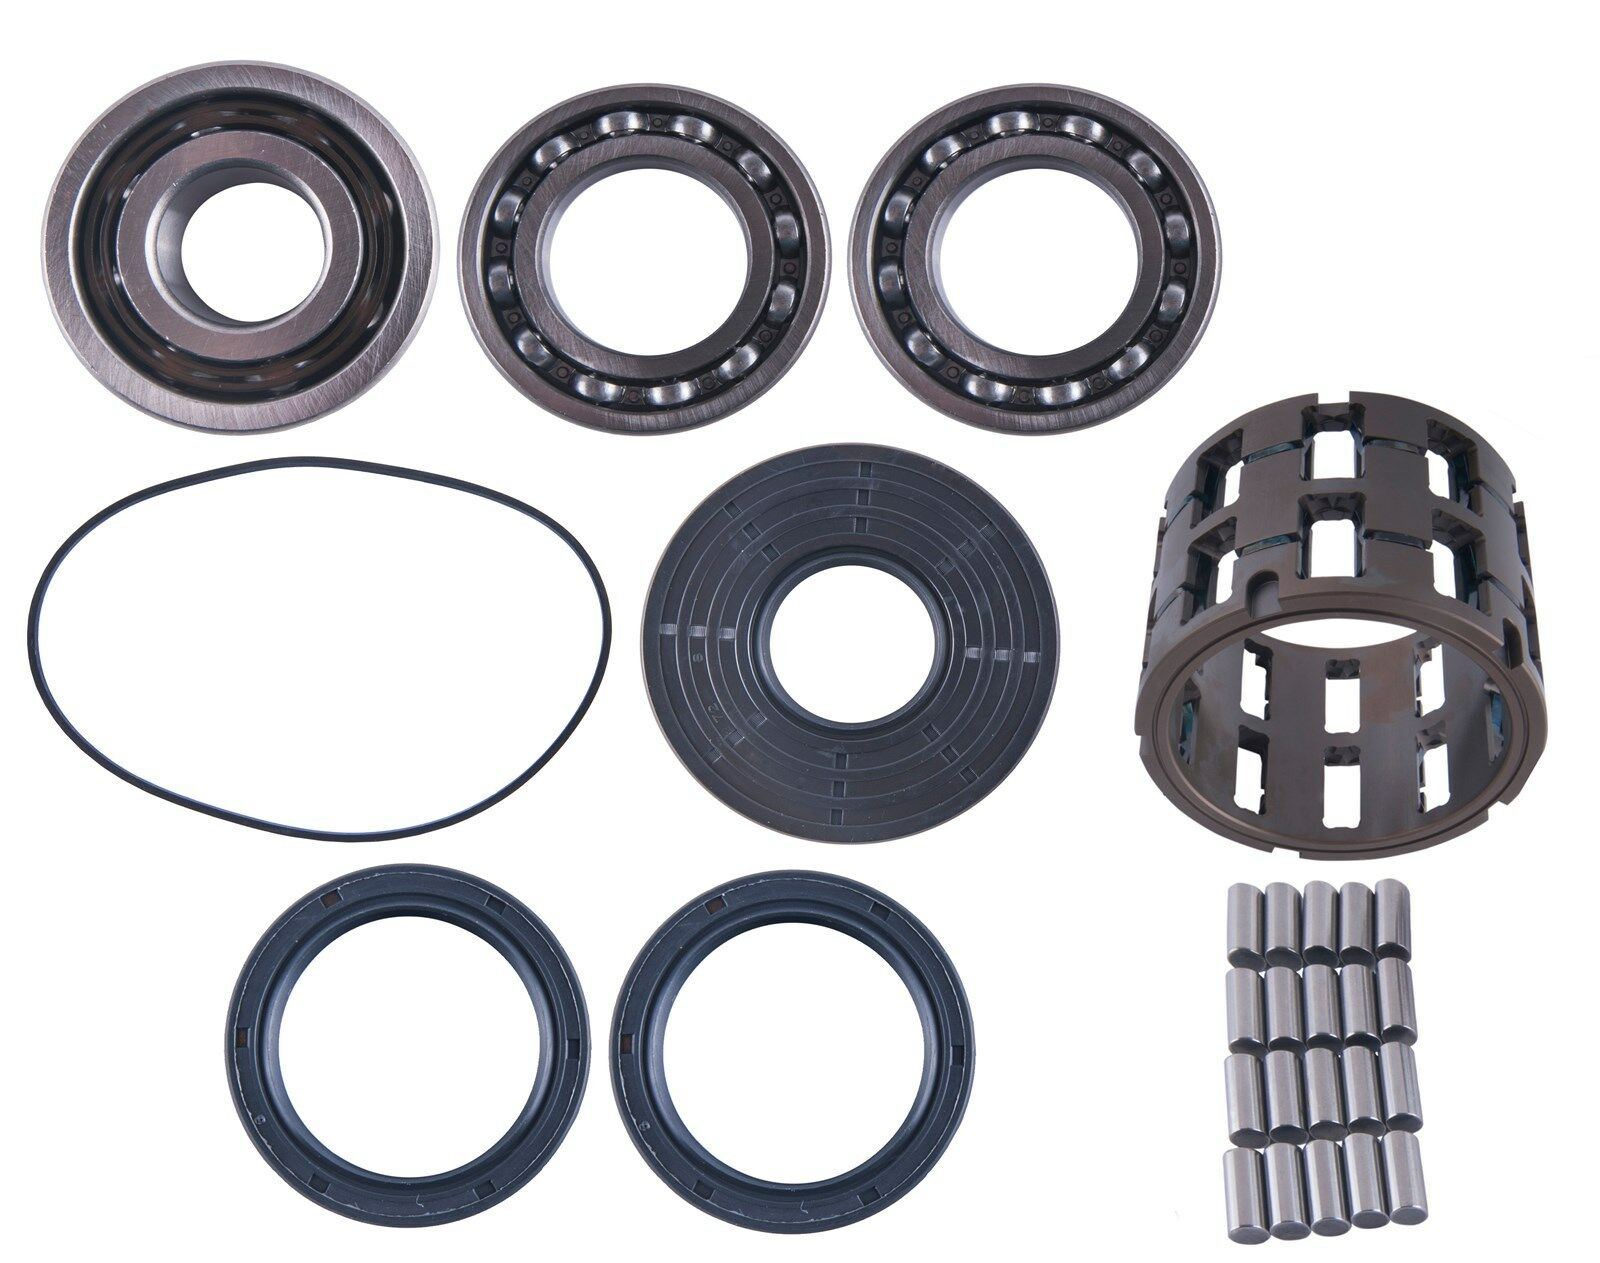 SXSV Complete Front Differential Seal Kit For 2015-2016 Polaris RZR 4 900